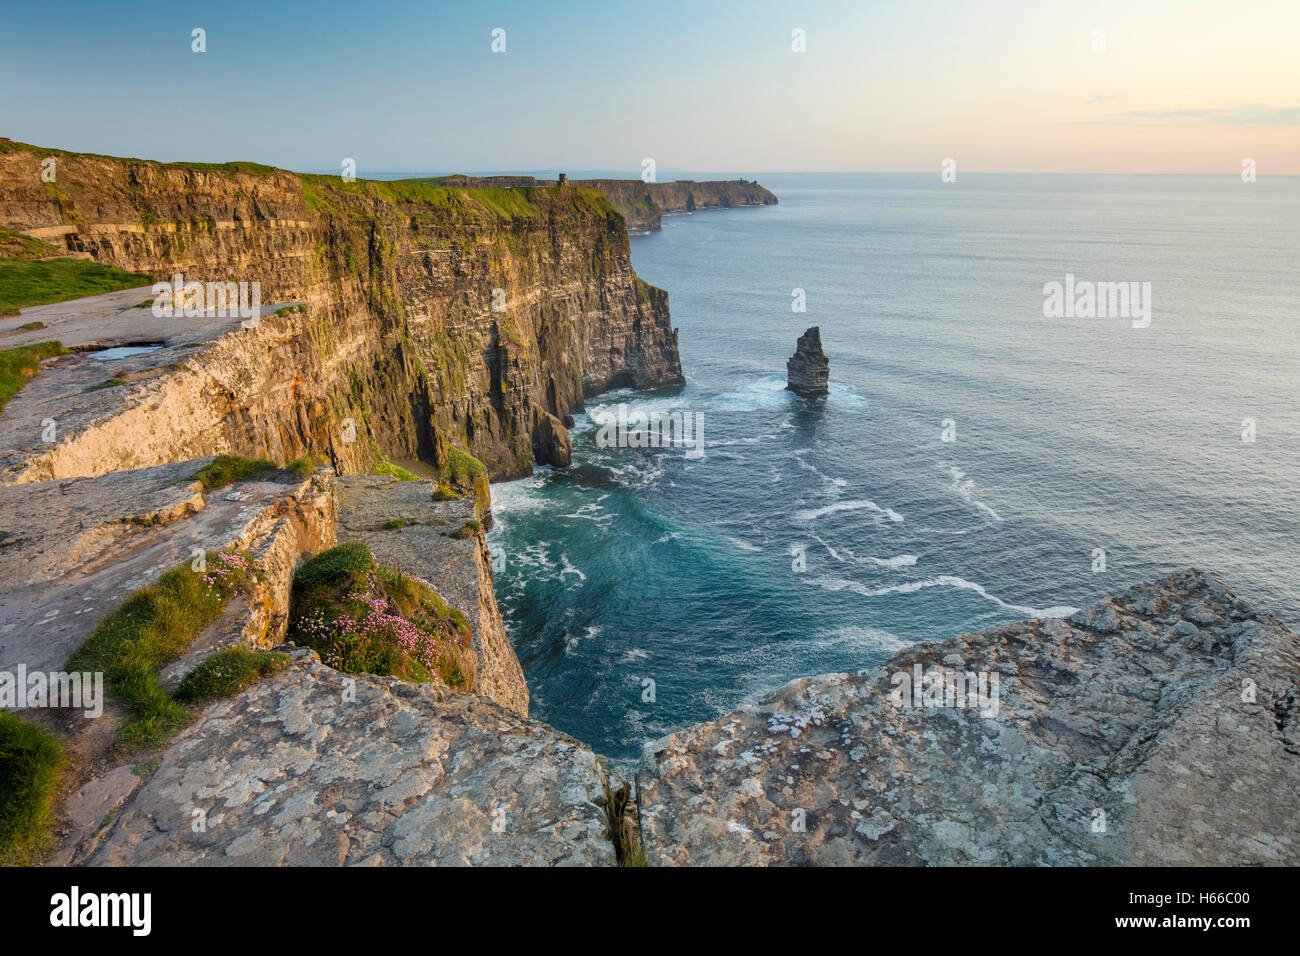 View across the Cliffs of Moher, County Clare, Ireland. - Stock Image